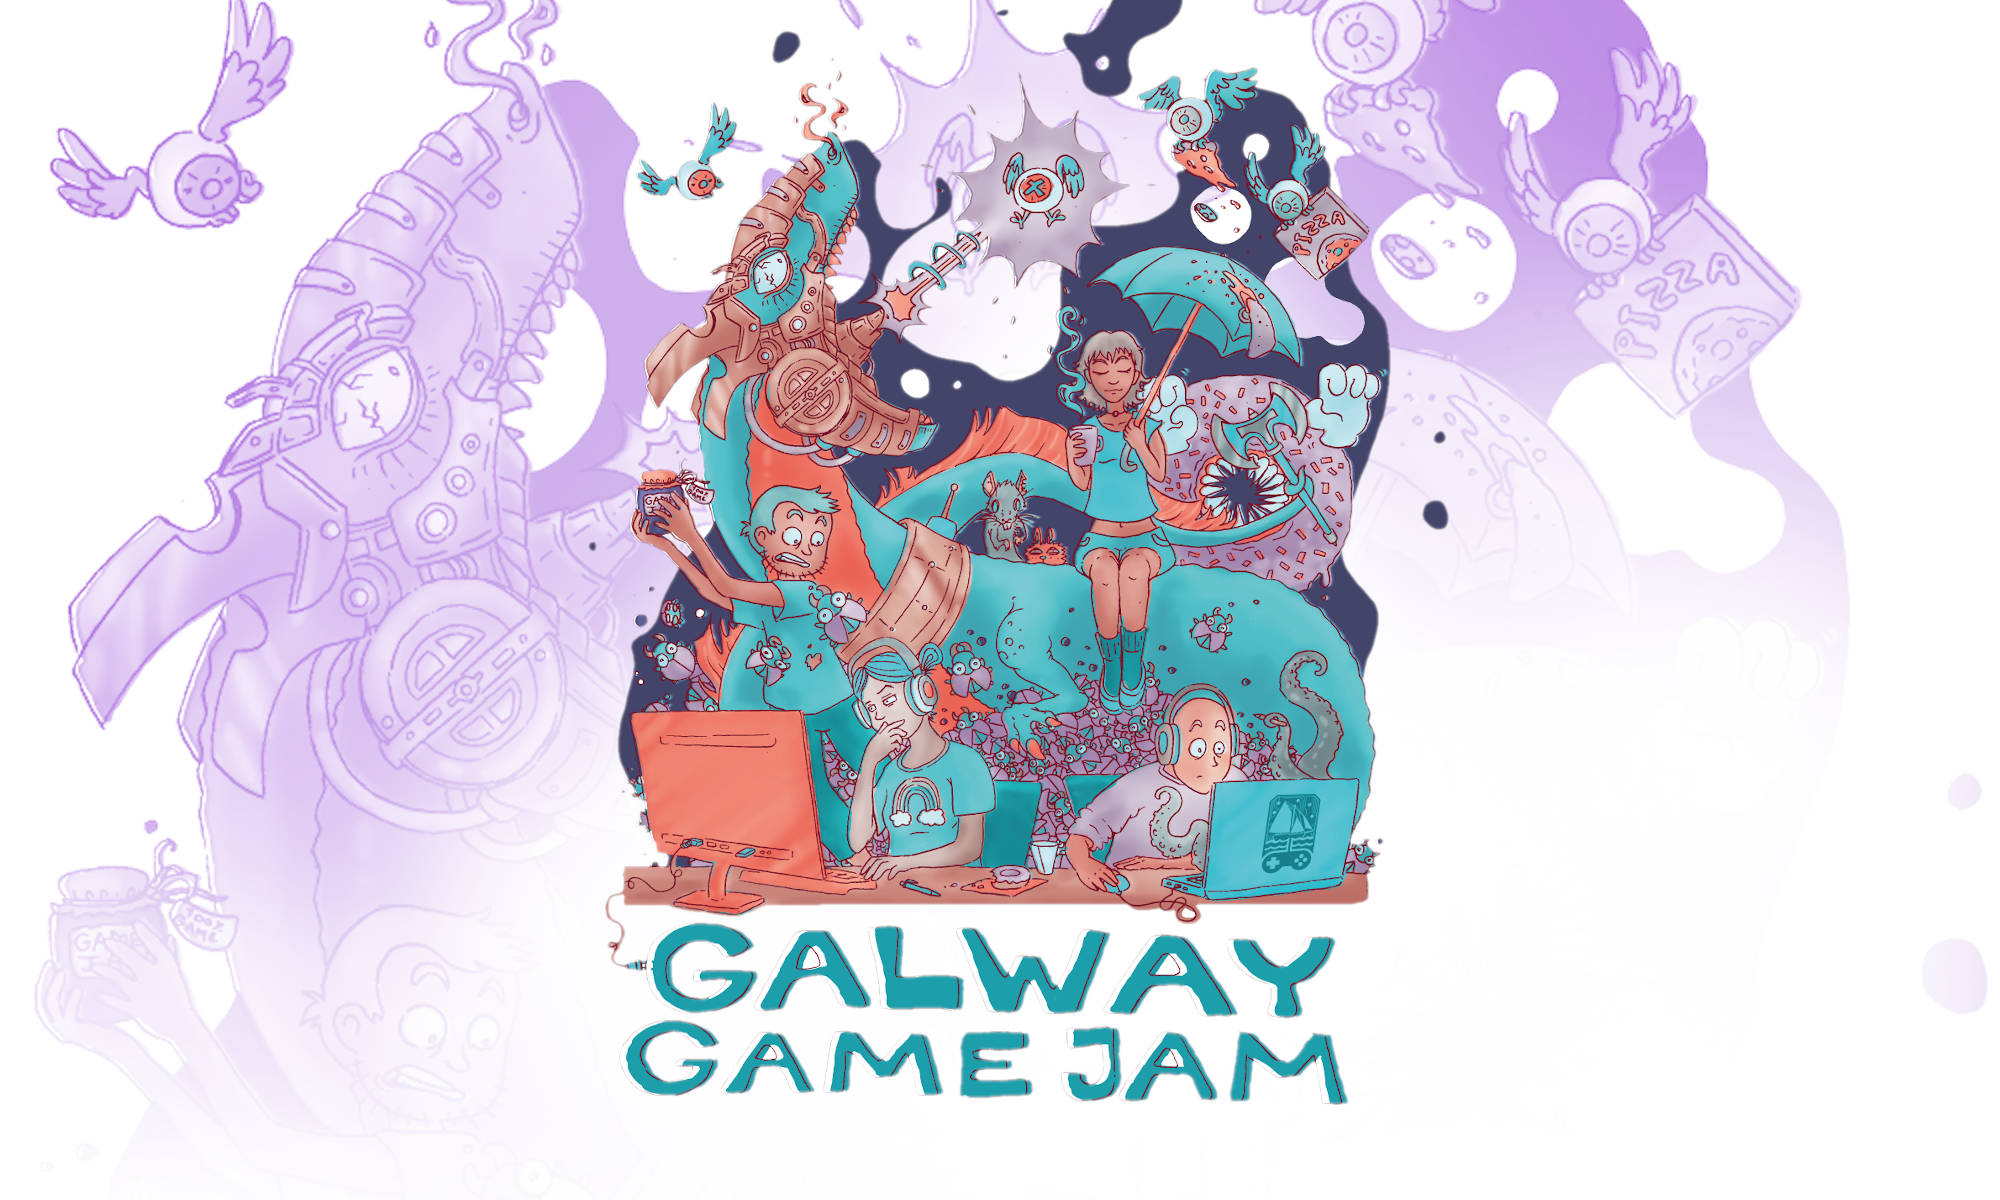 Galway Game Jam